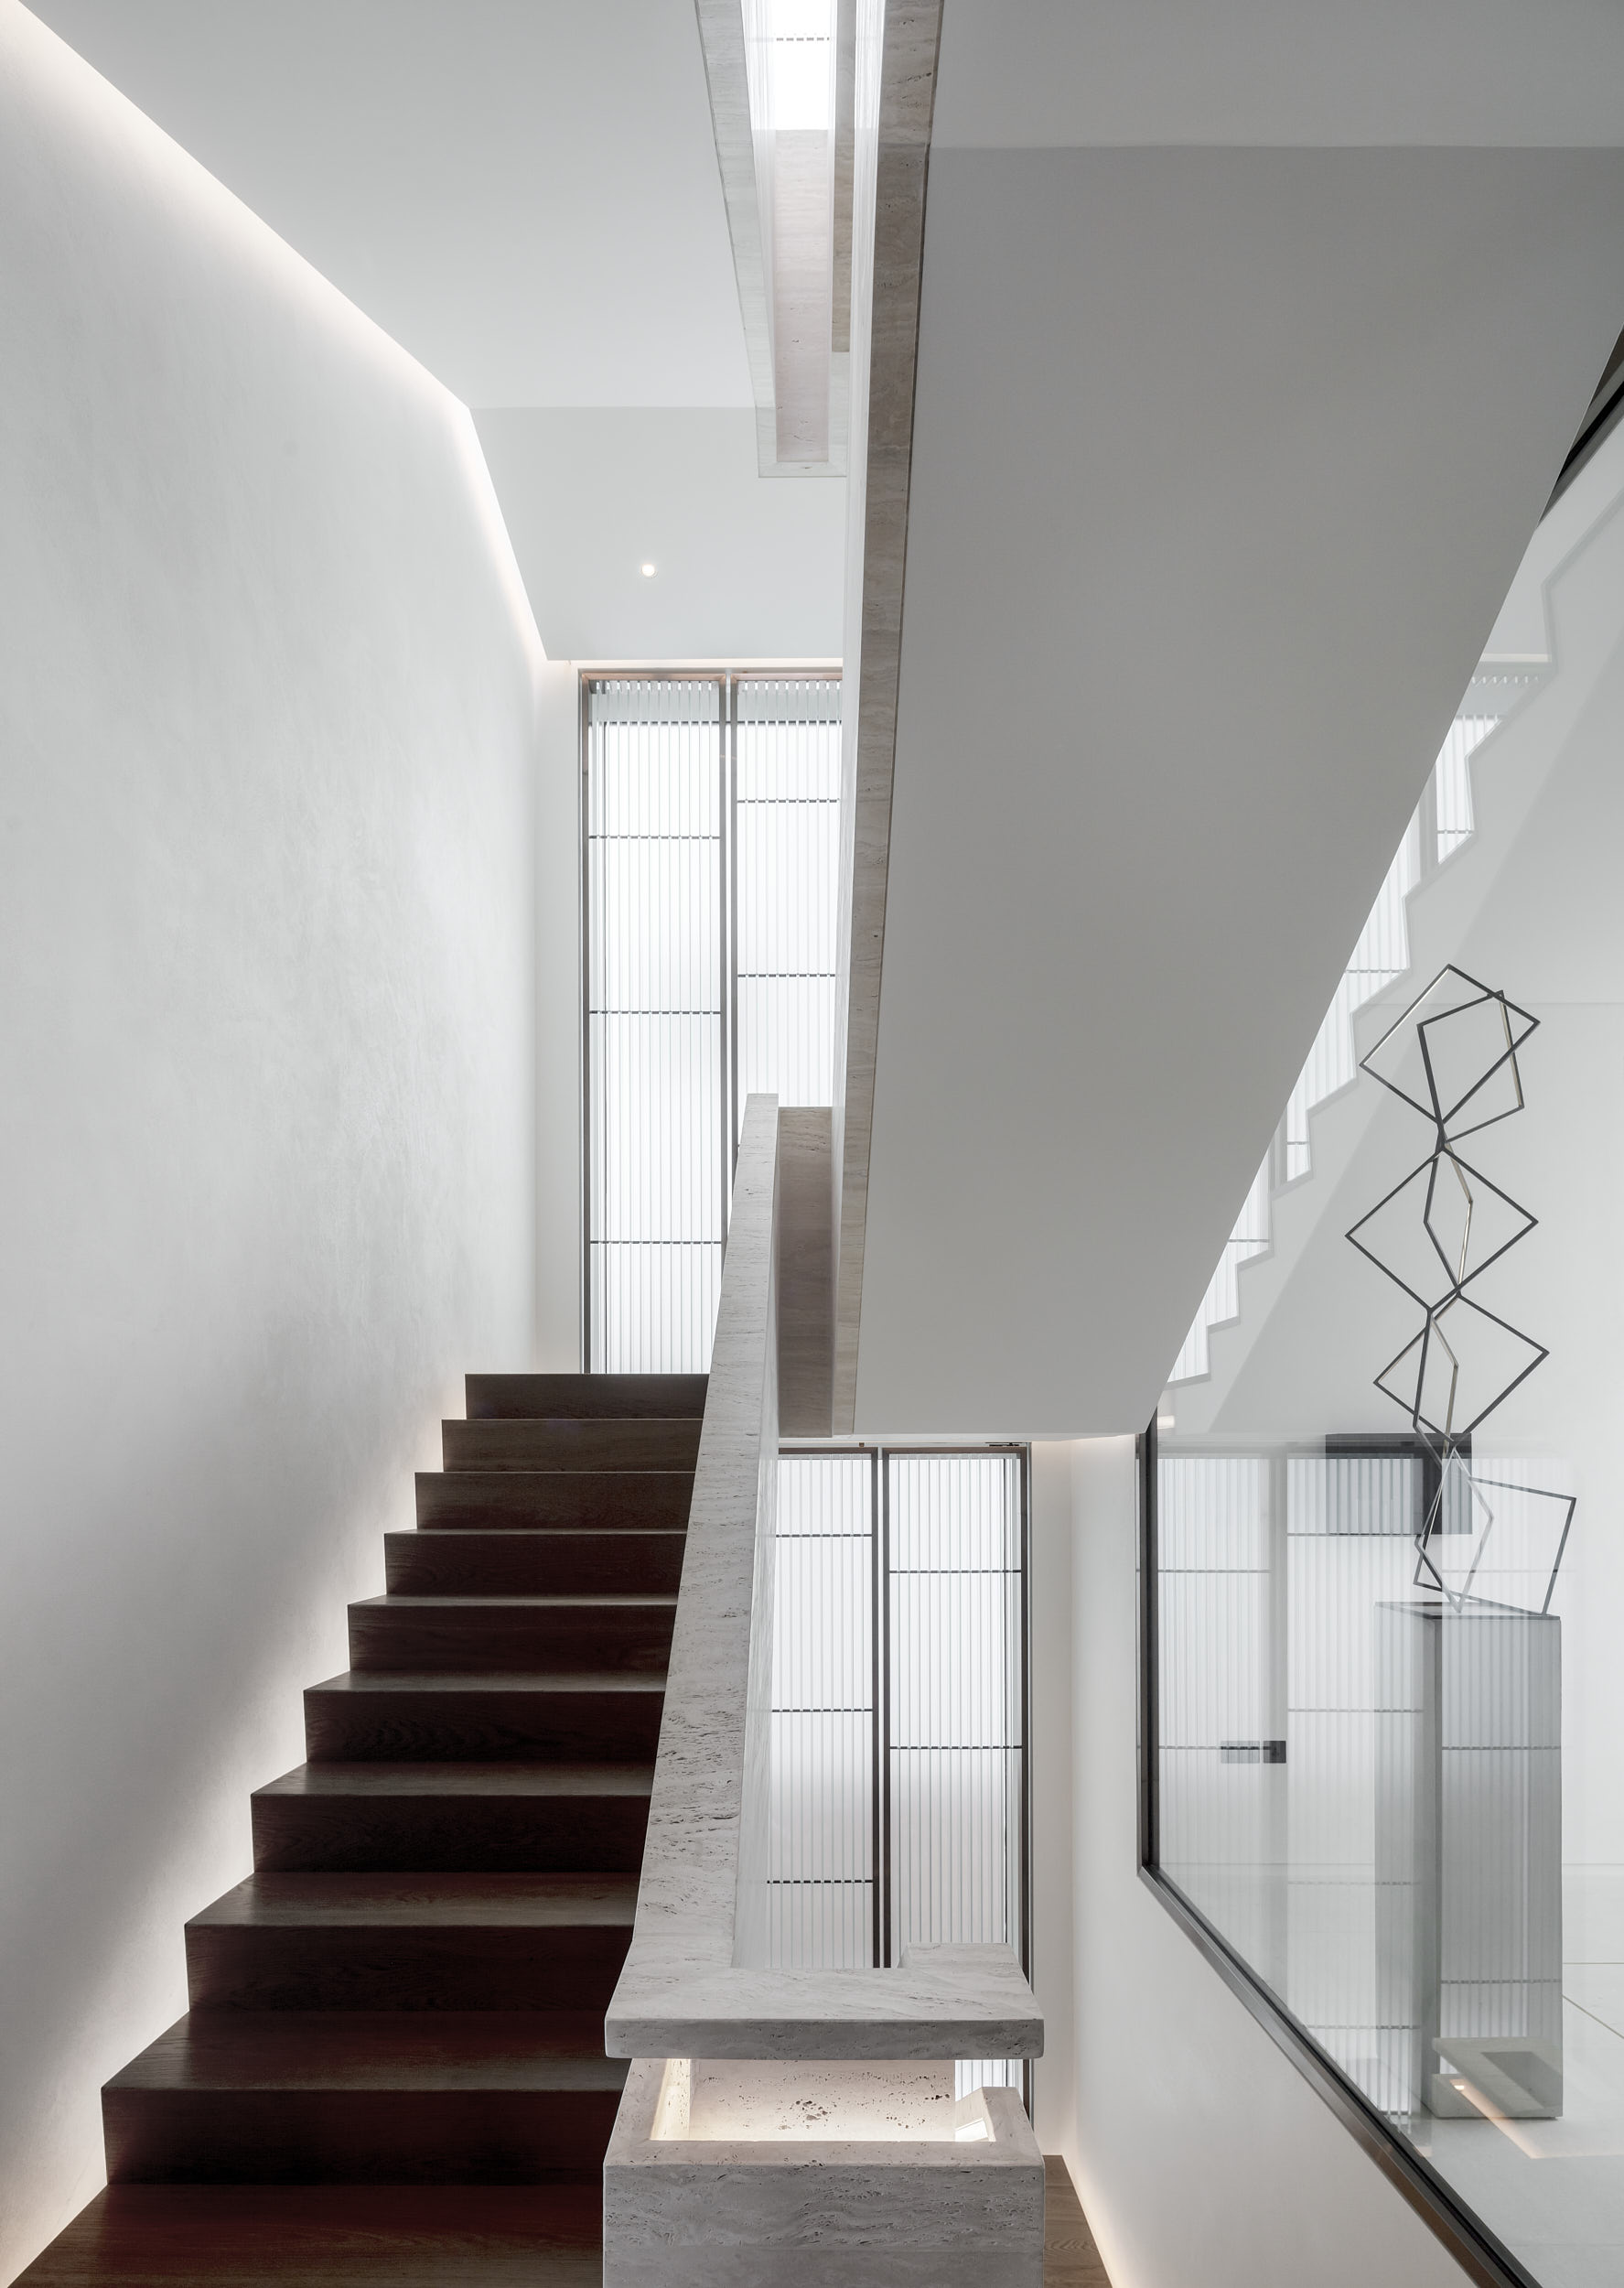 Architectural photography of the interior staircase.